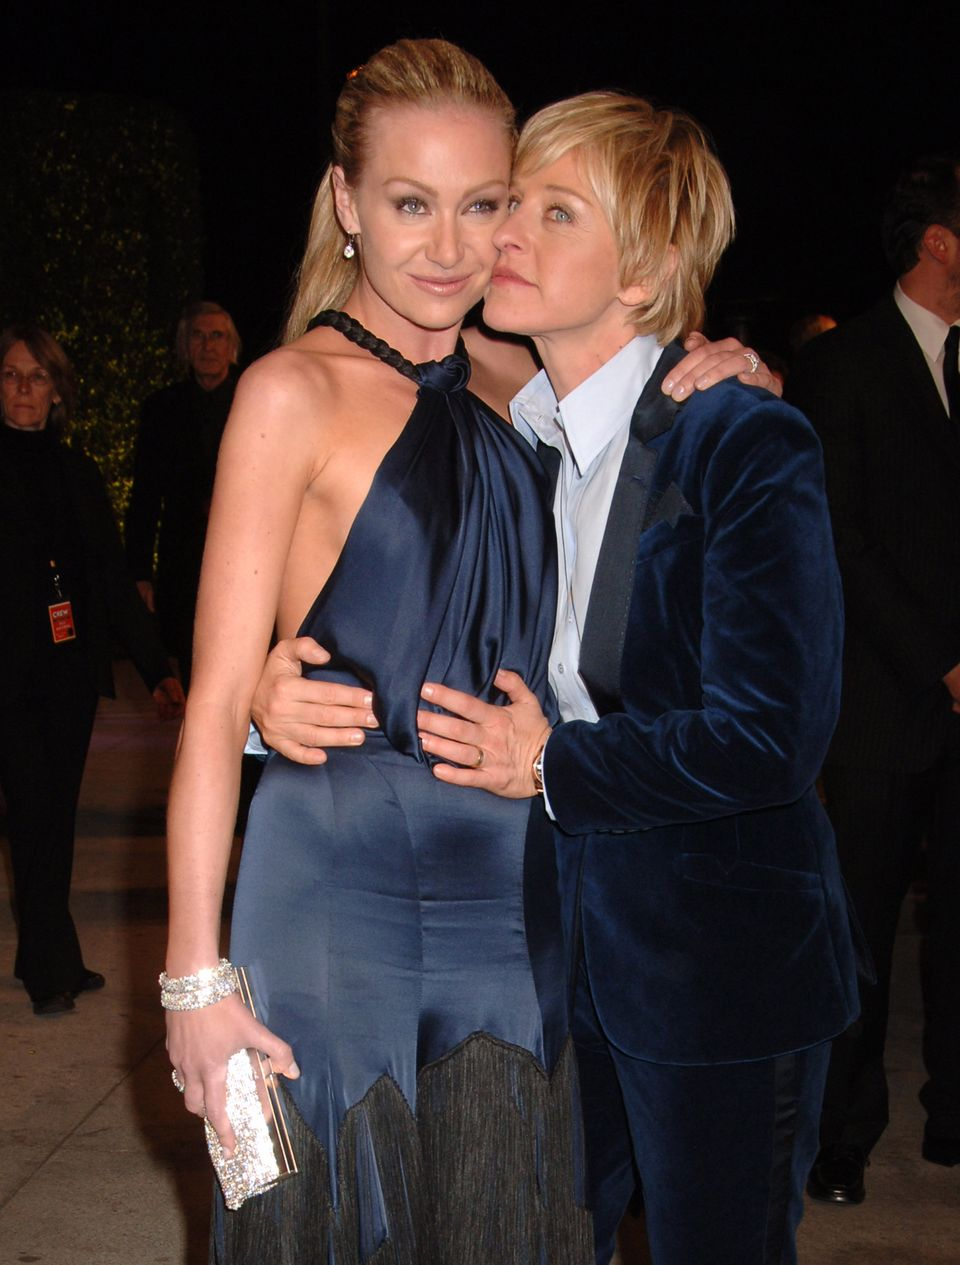 Portia de Rossi and Ellen DeGeneres at the Mortons in West Hollywood, California   Photo: Getty Images